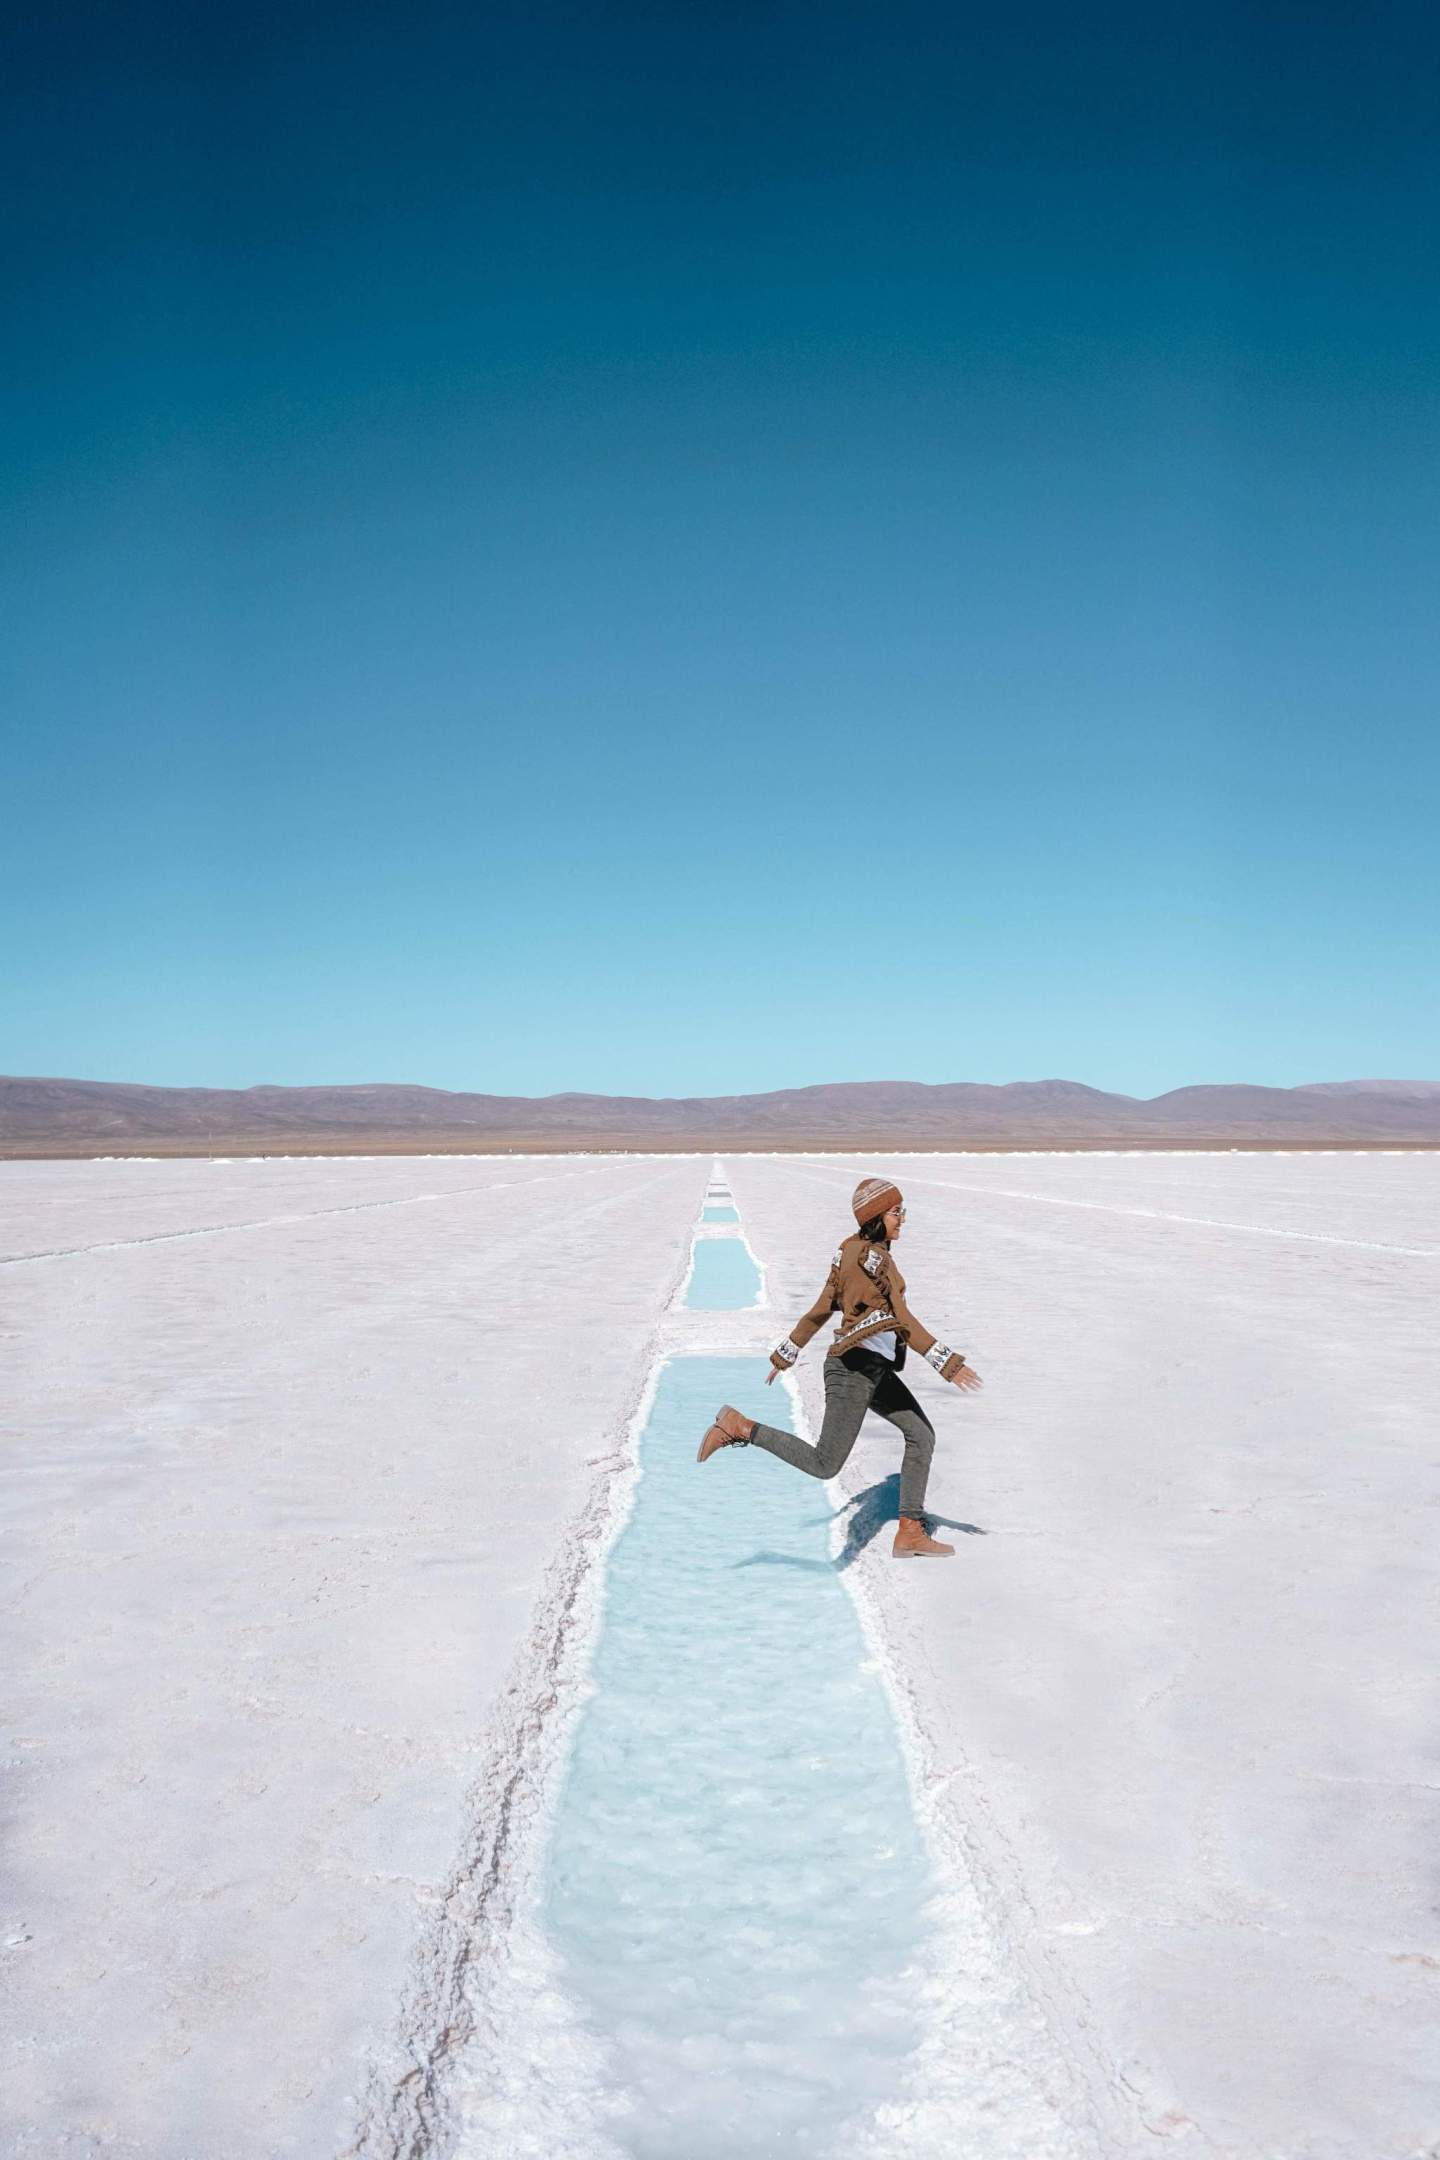 7 reasons to visit Salinas Grandes Salt Flats in Argentina